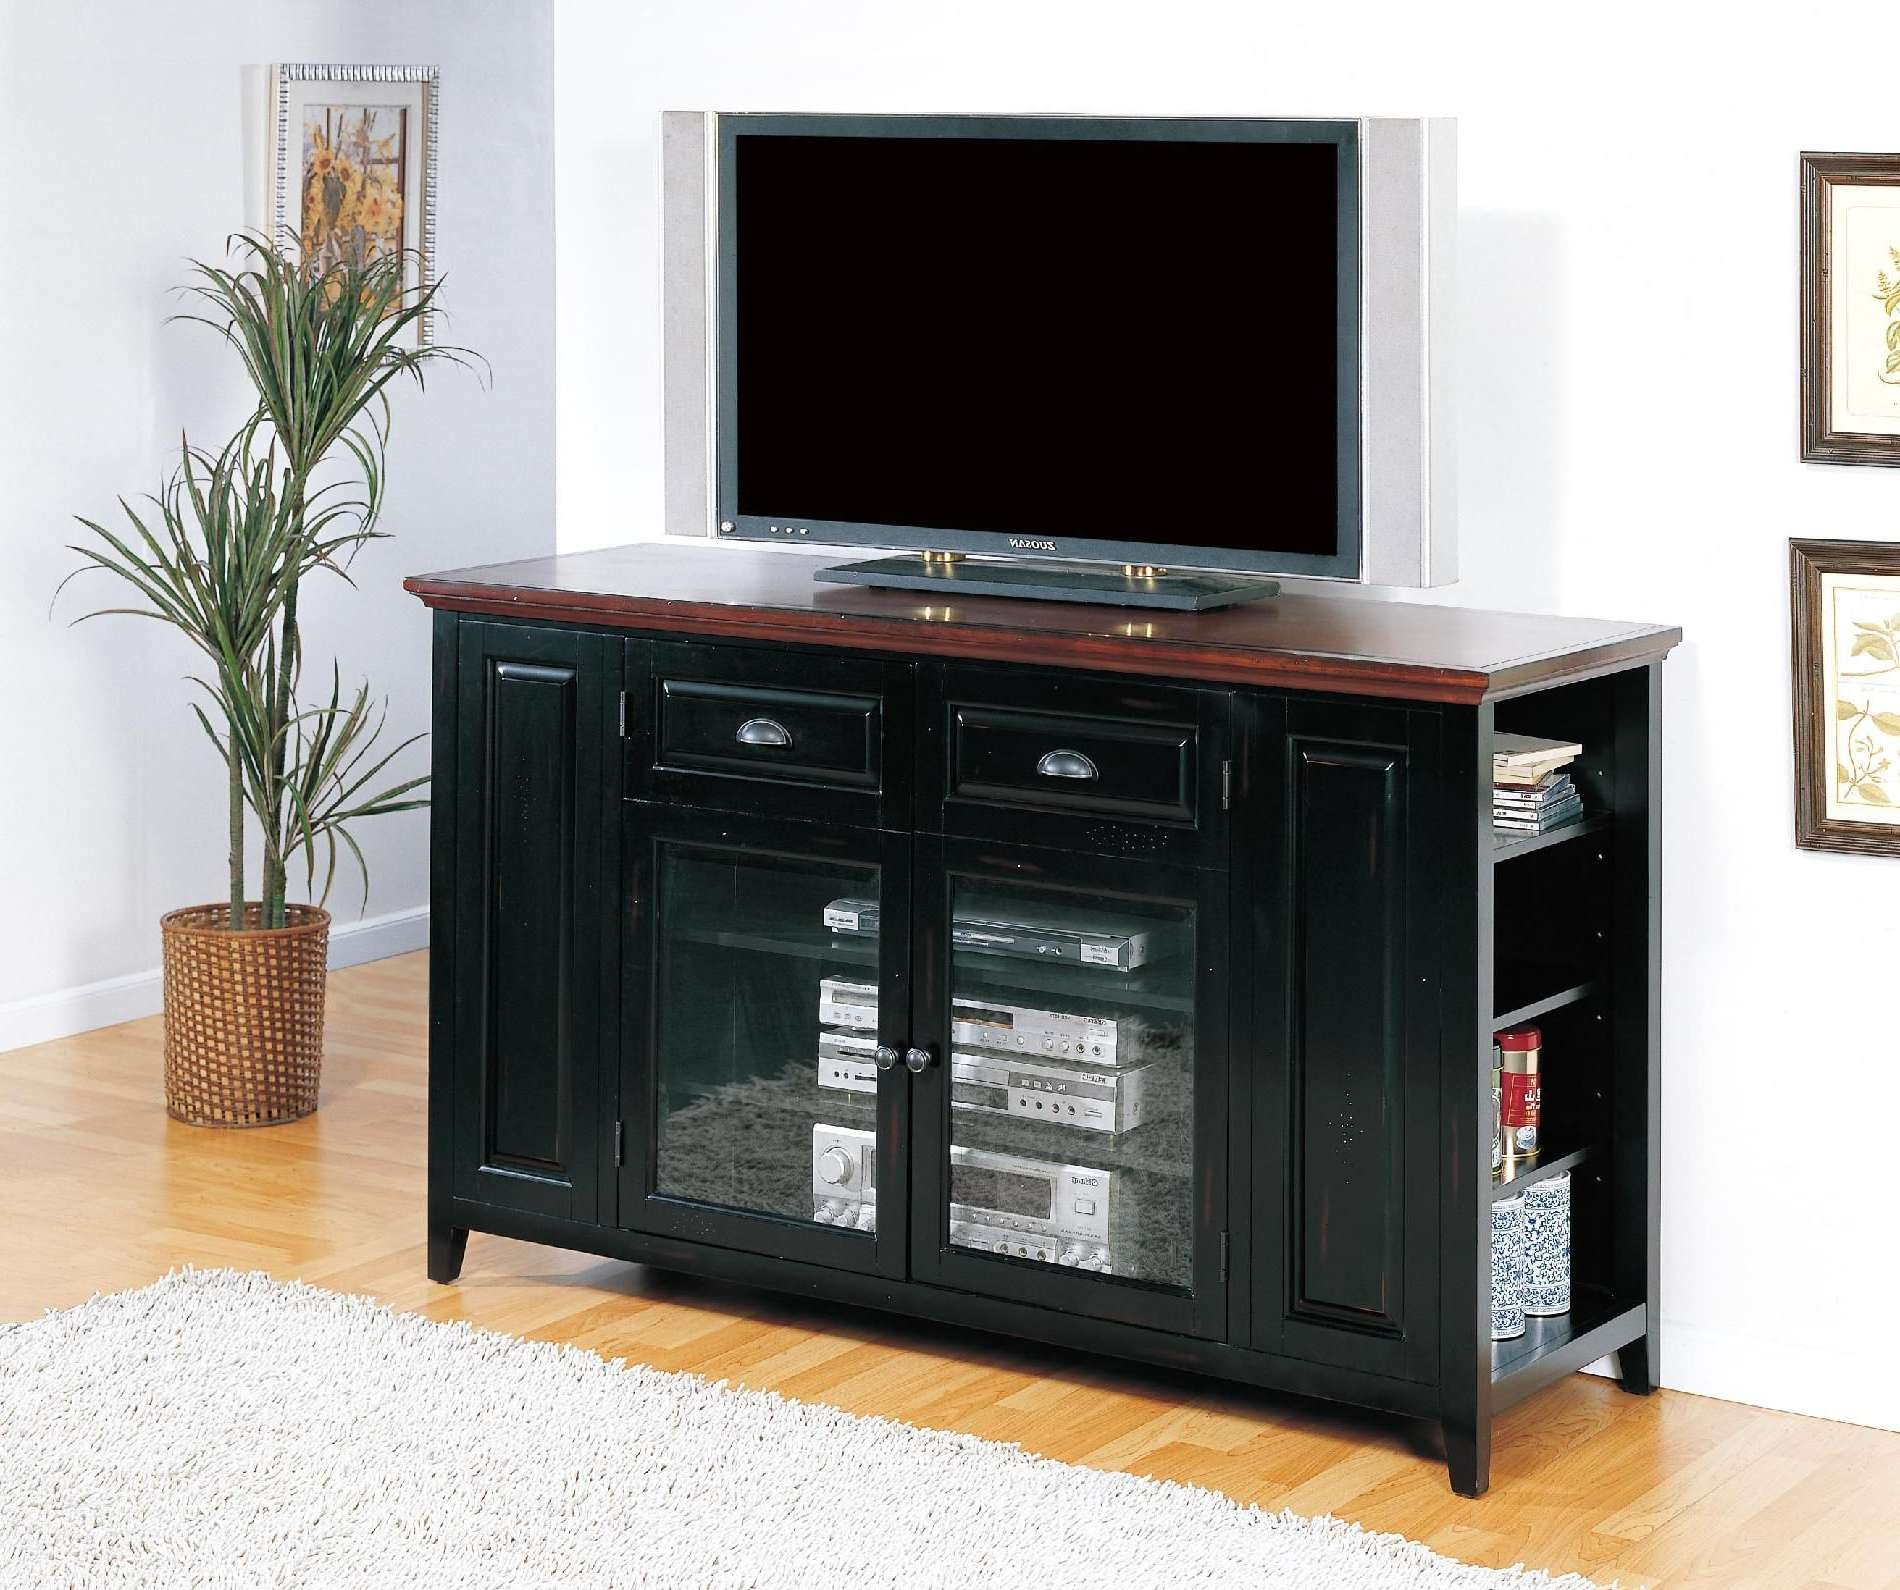 Retro Black Oak Wood Tv Stand With Glass Doors Of Tall Tv Stands Inside Tall Black Tv Cabinets (View 13 of 20)